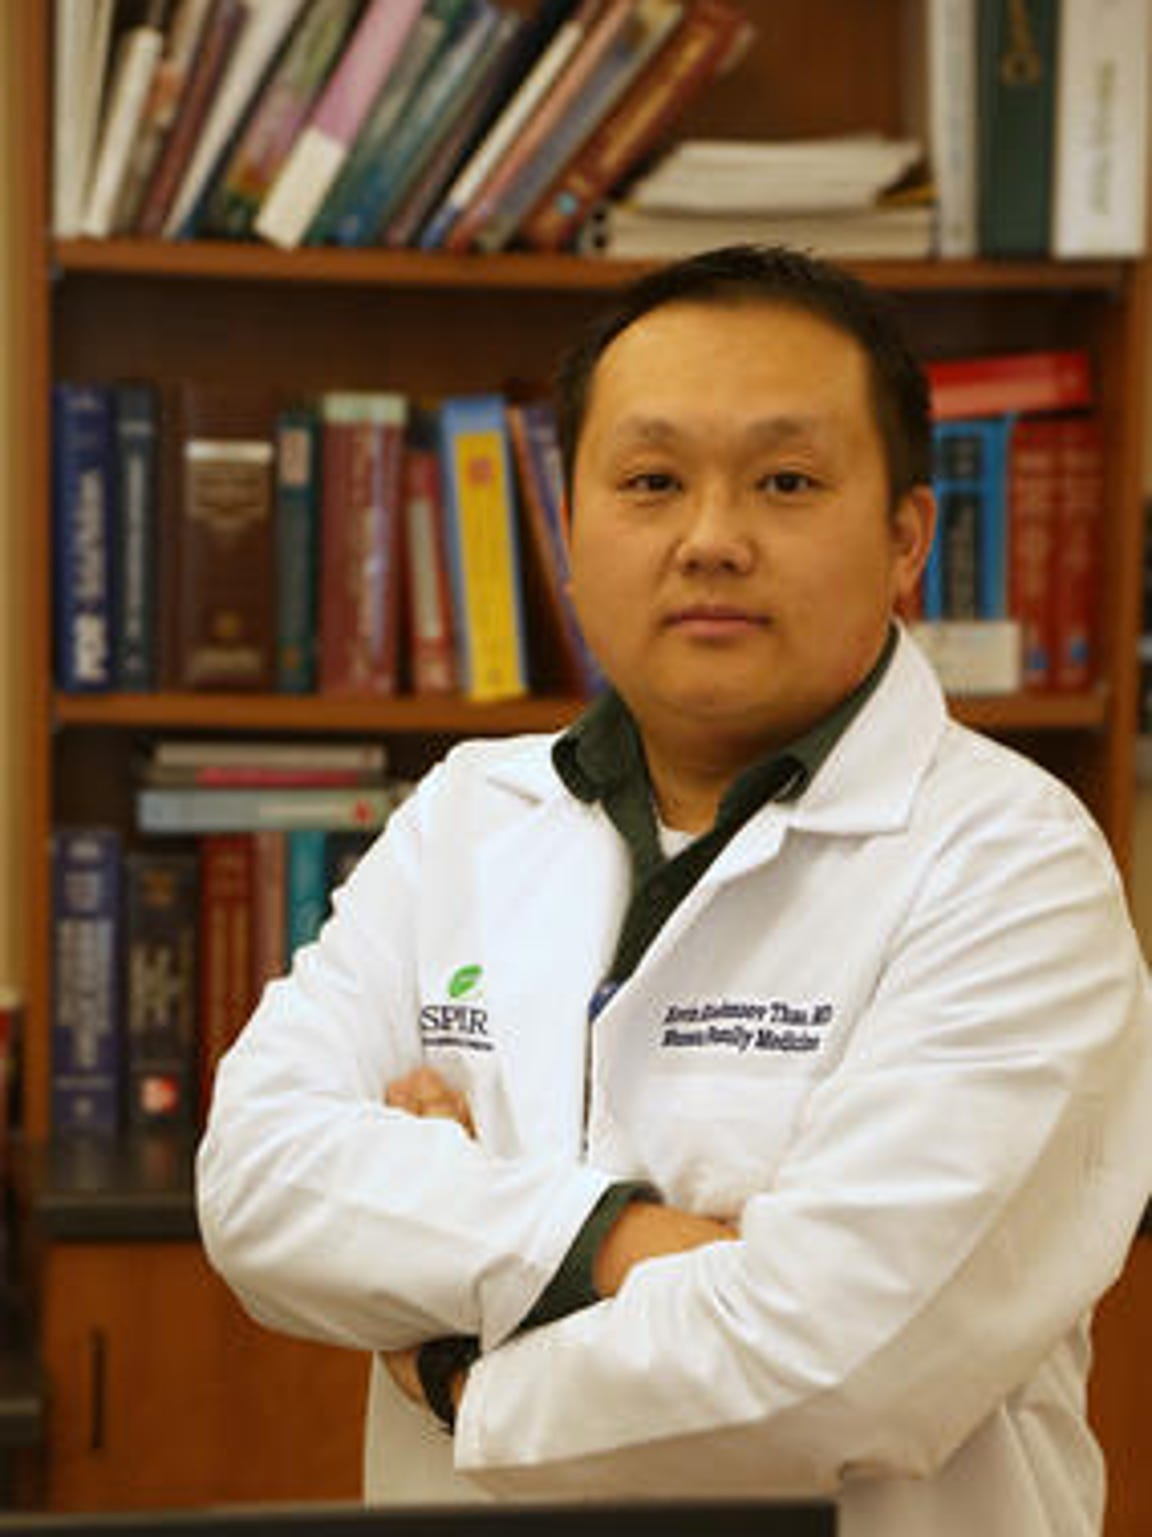 Dr. Kevin Koobmoov Thao is the primary author of a